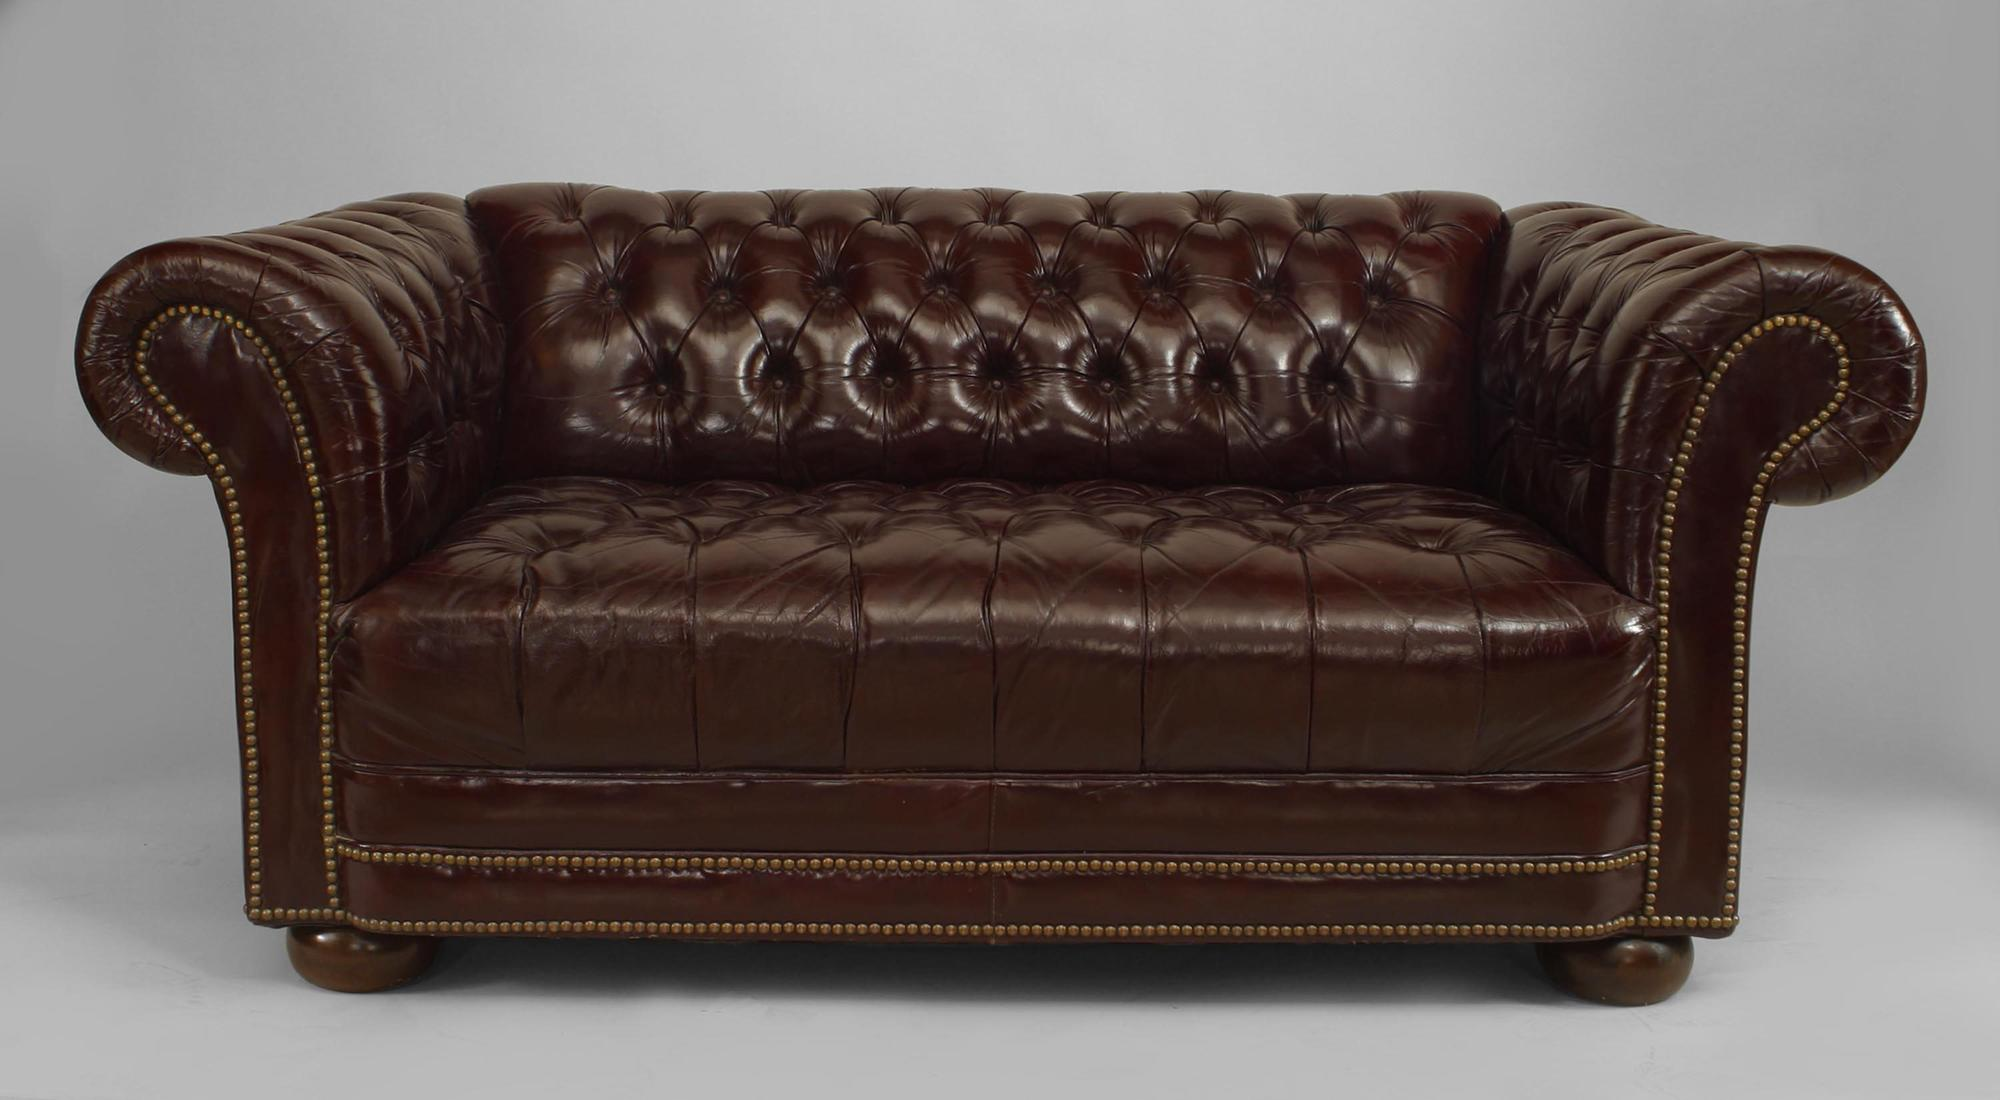 couch, Loveseat Tufted Brown Leather Rectangular Shape Of Modern Design Her  Feet Brown Round Wood